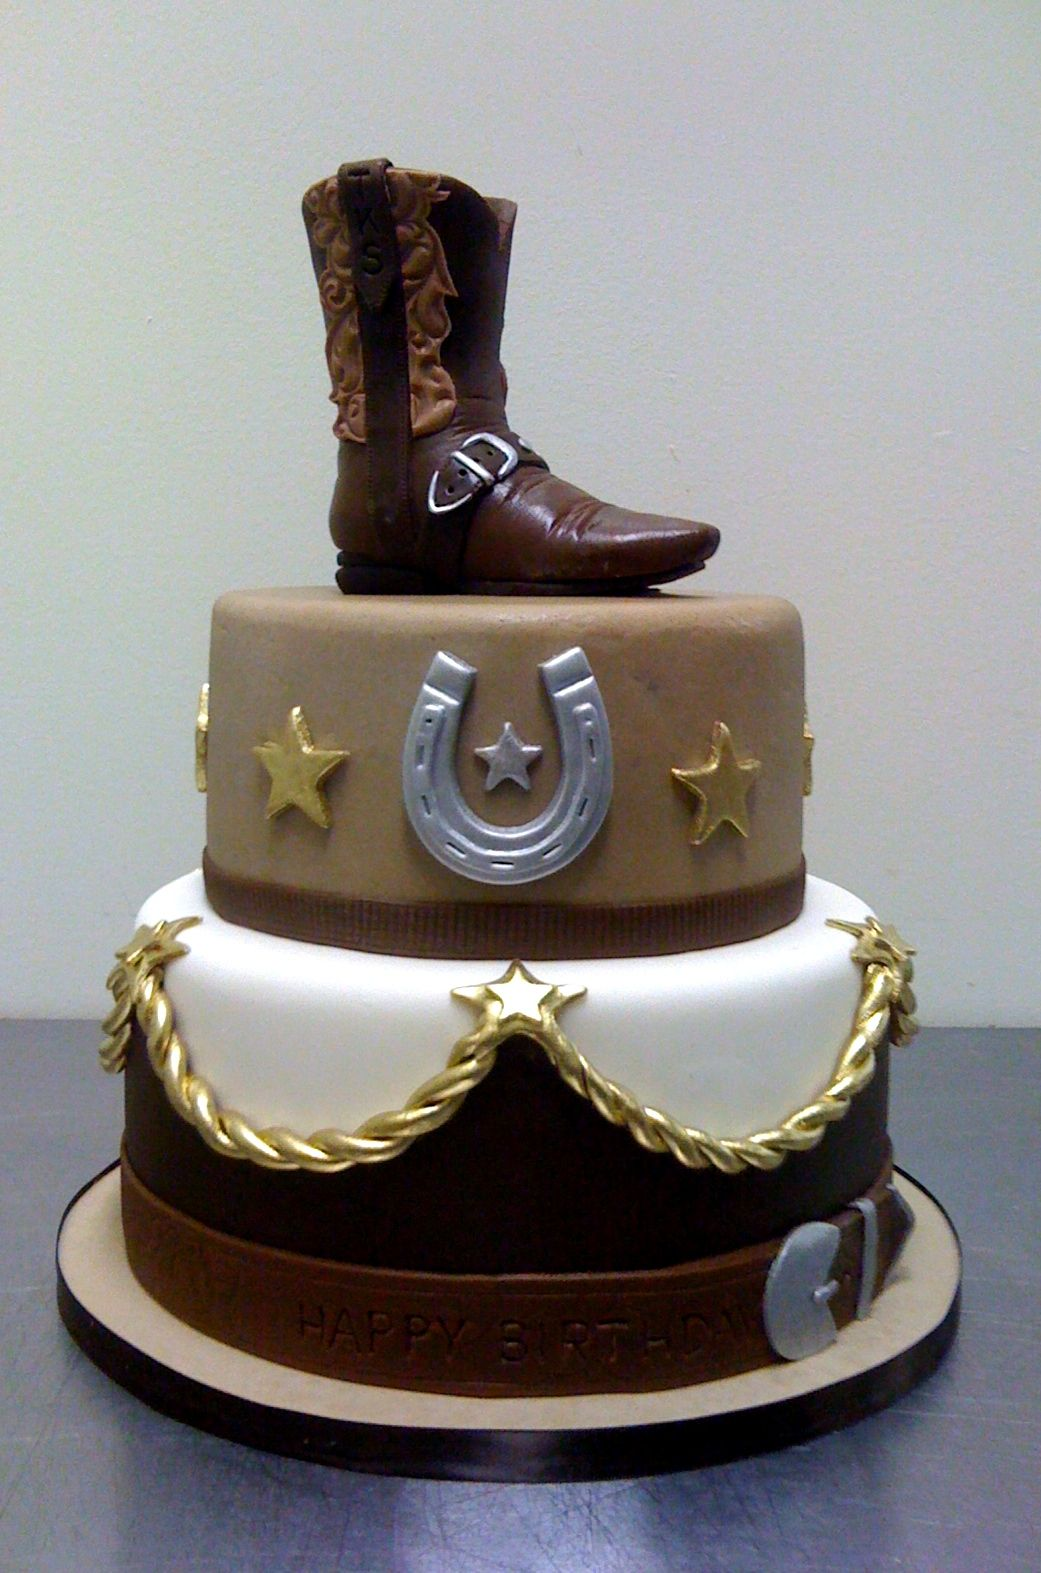 Enjoyable Amy Beck Cake Design Chicago Il Cowboy Boot Birthday Cake Funny Birthday Cards Online Aboleapandamsfinfo